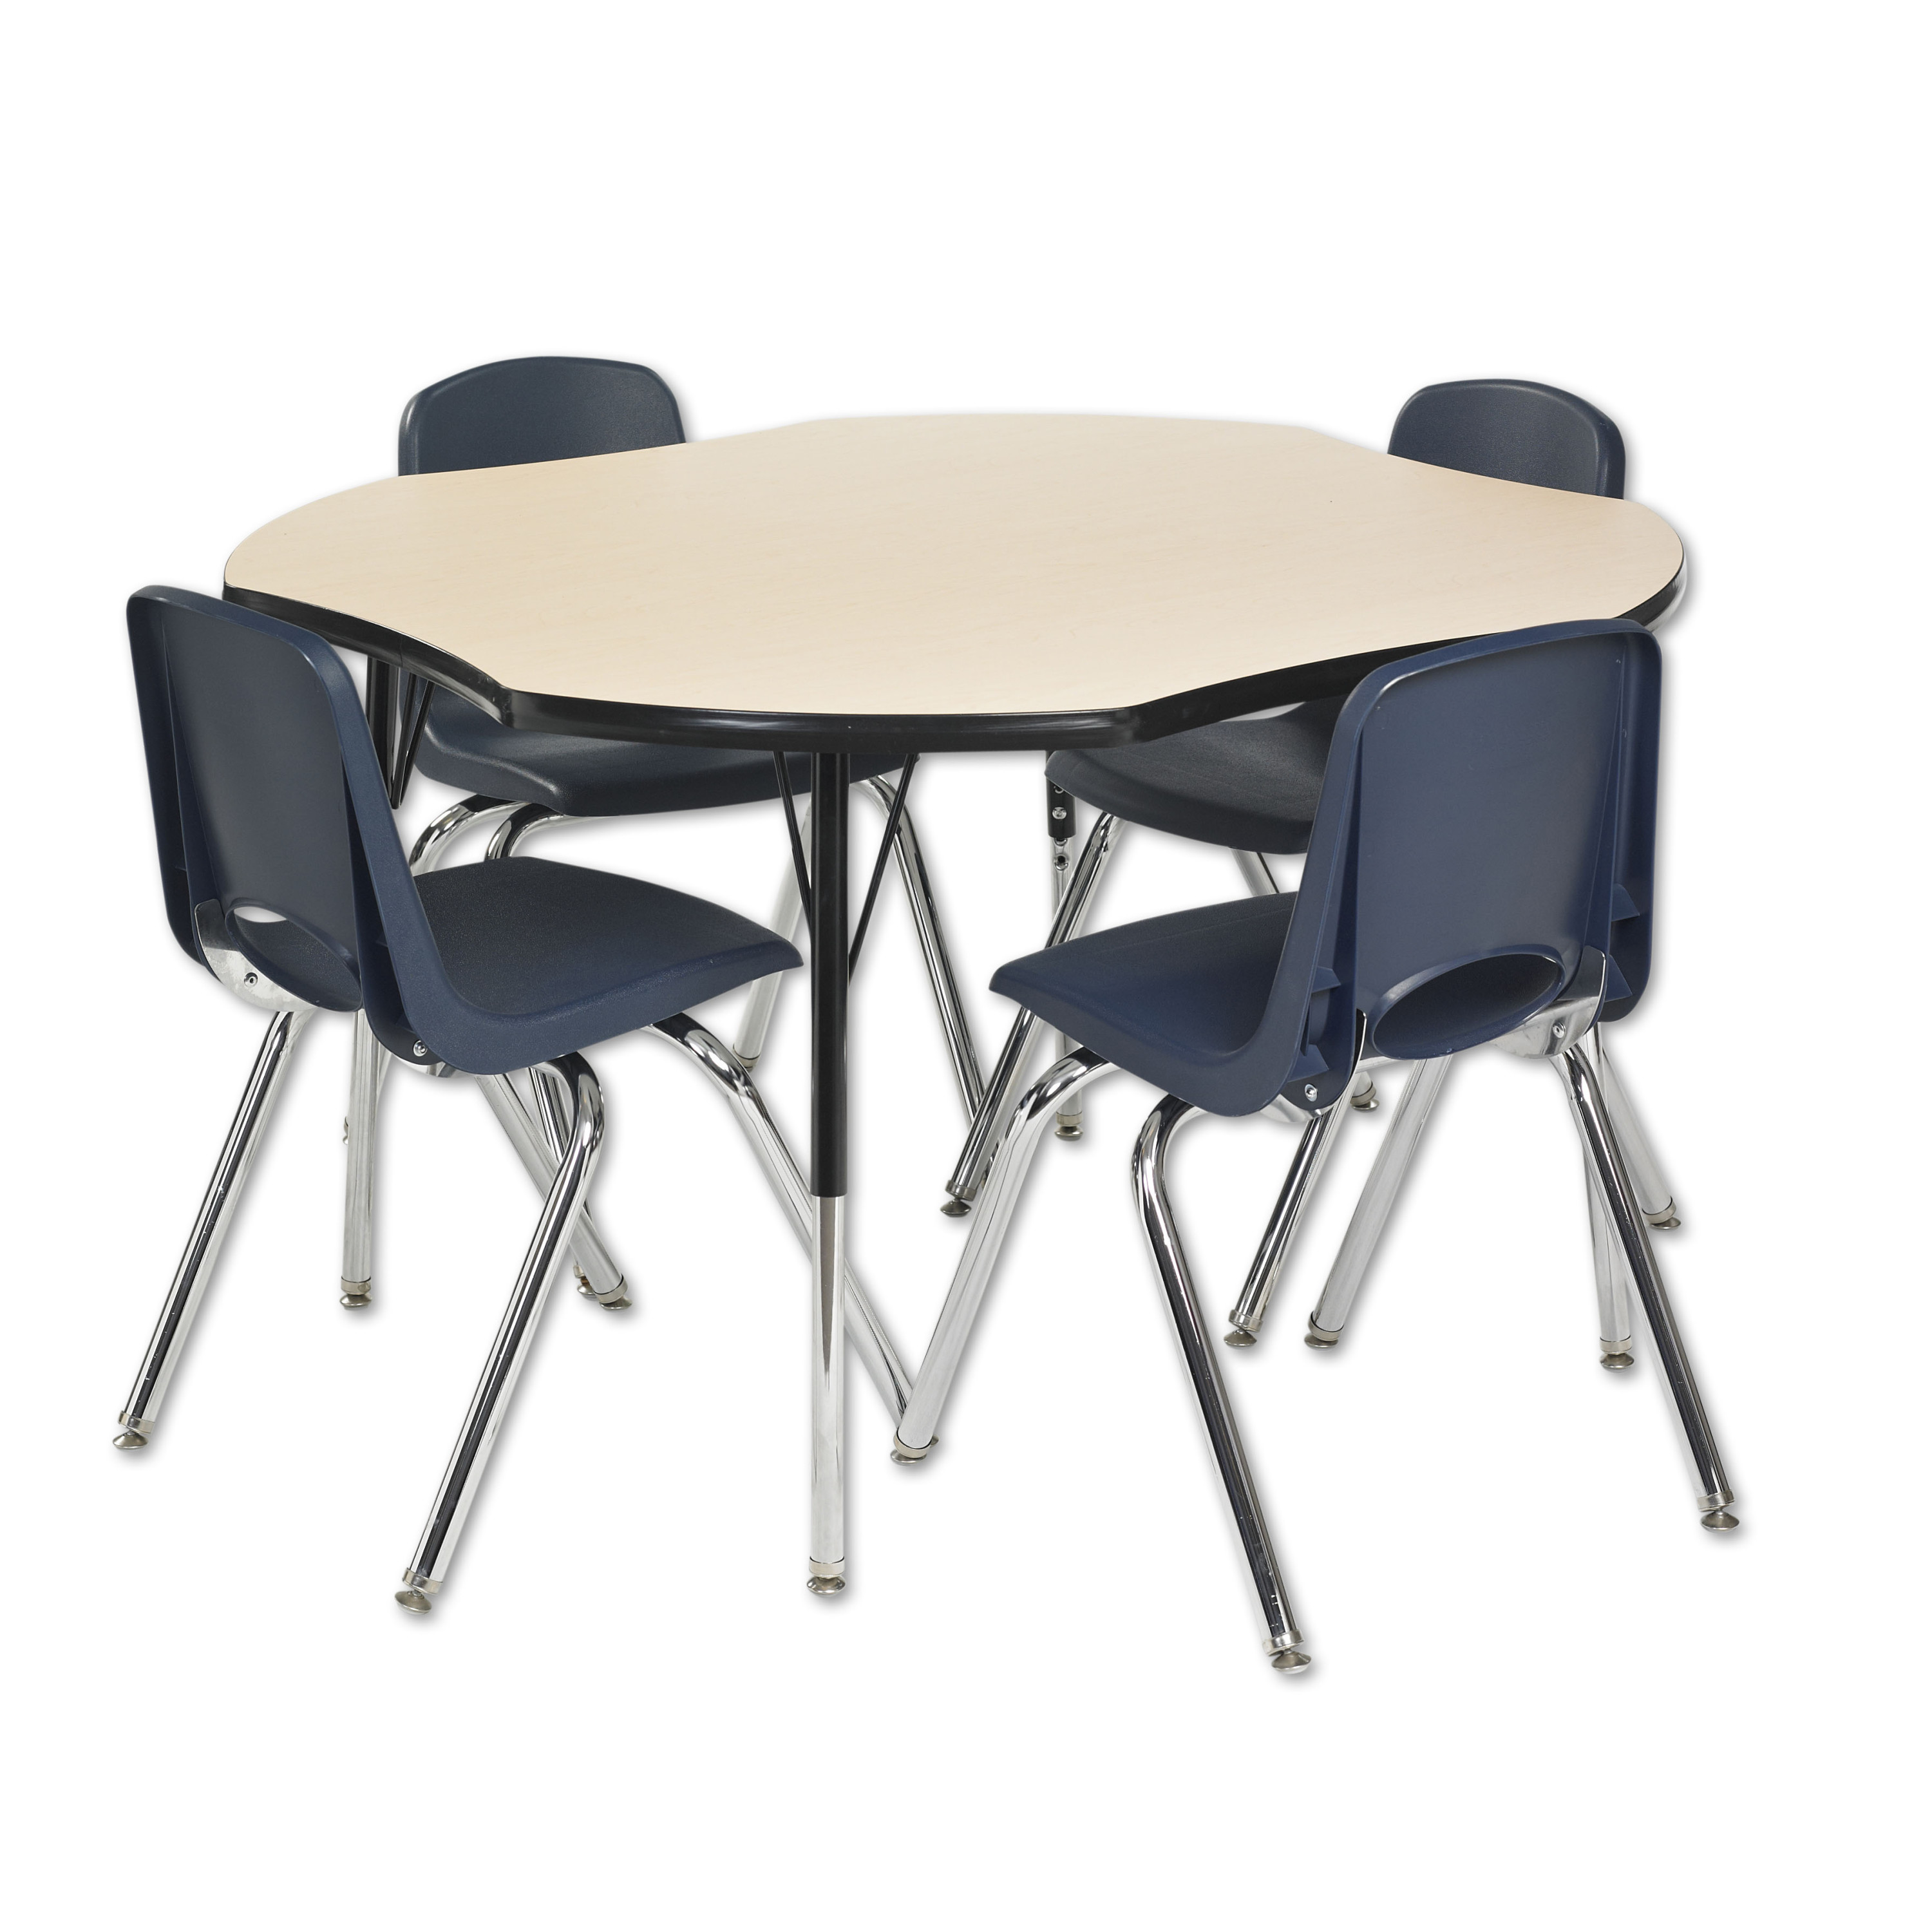 48in Clover Everyday T-Mold Adjustable Activity Table Grey/Navy - Standard Swivel with Four 18in Stack Chairs Navy - Swivel Glide